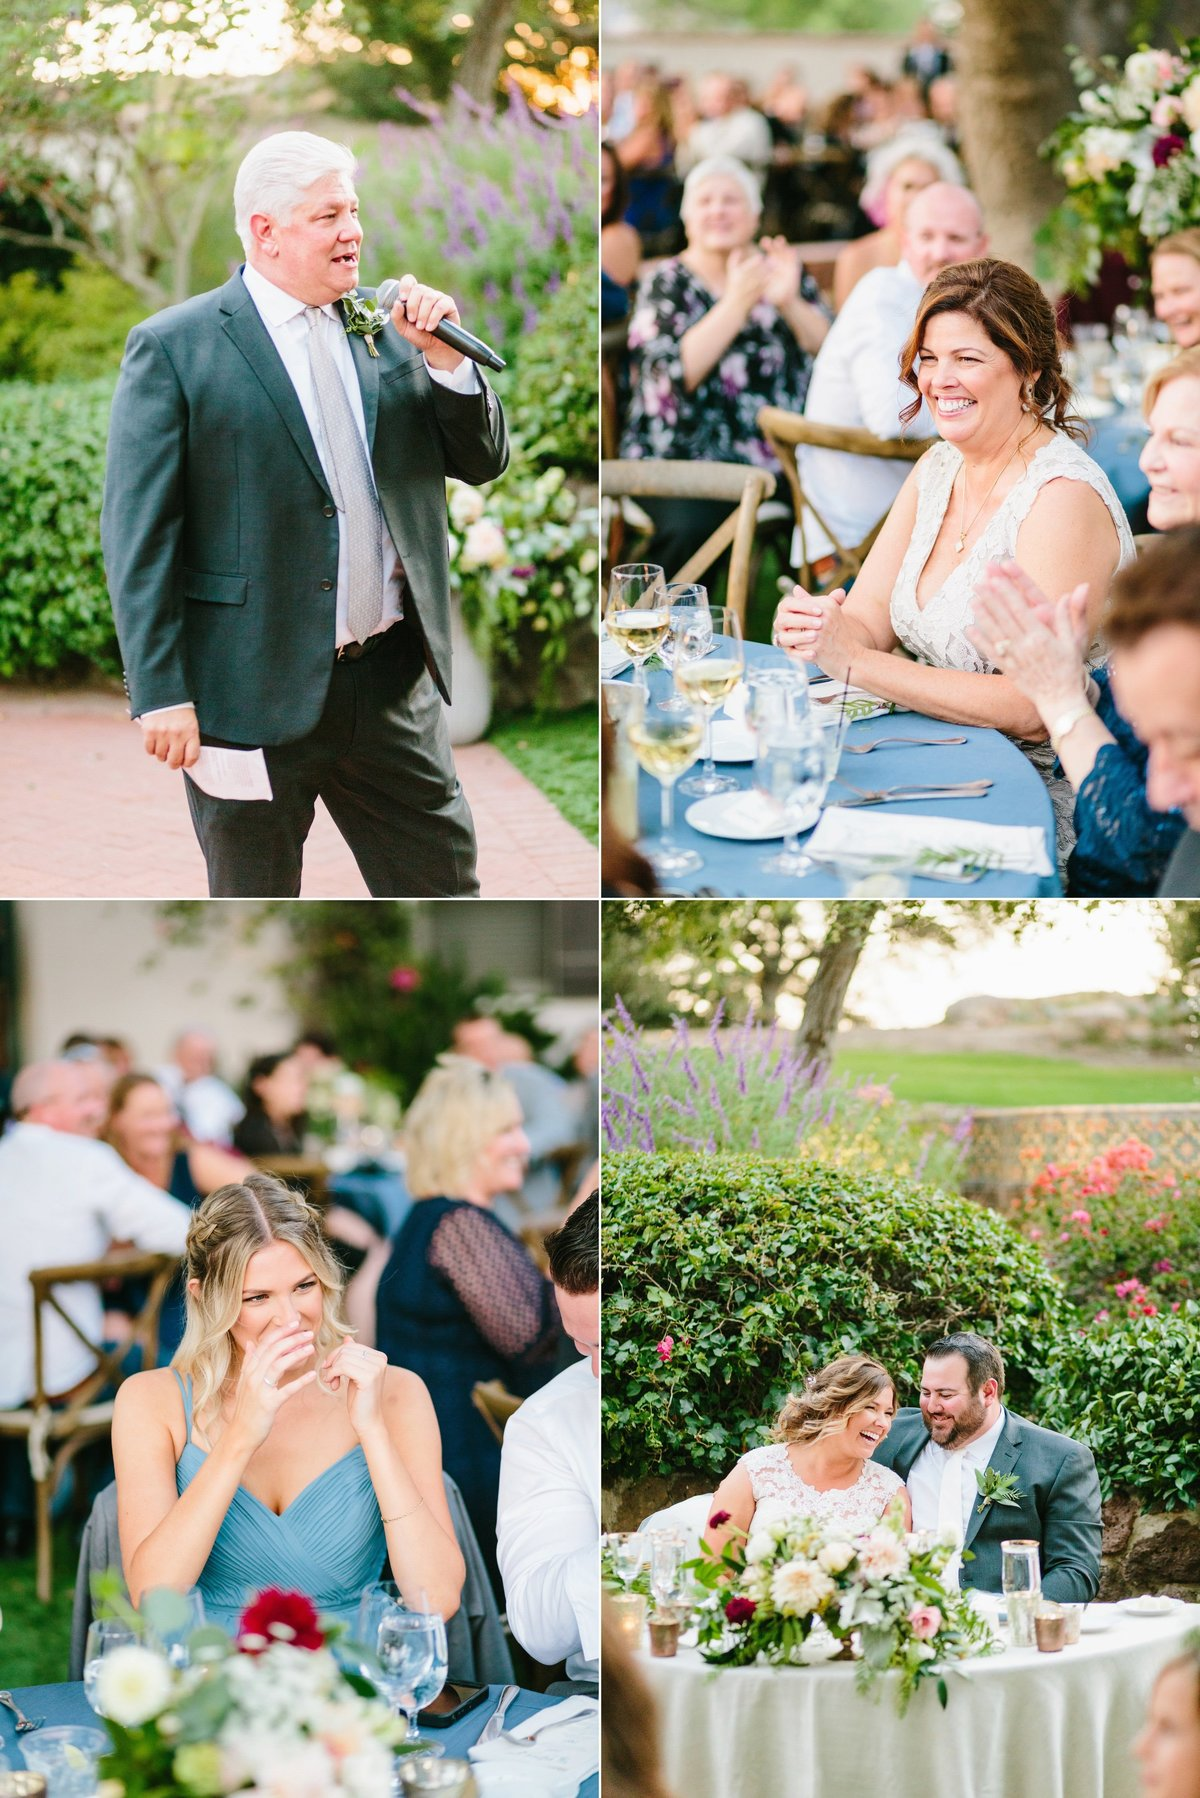 Best California Wedding Photographer-Jodee Debes Photography-319